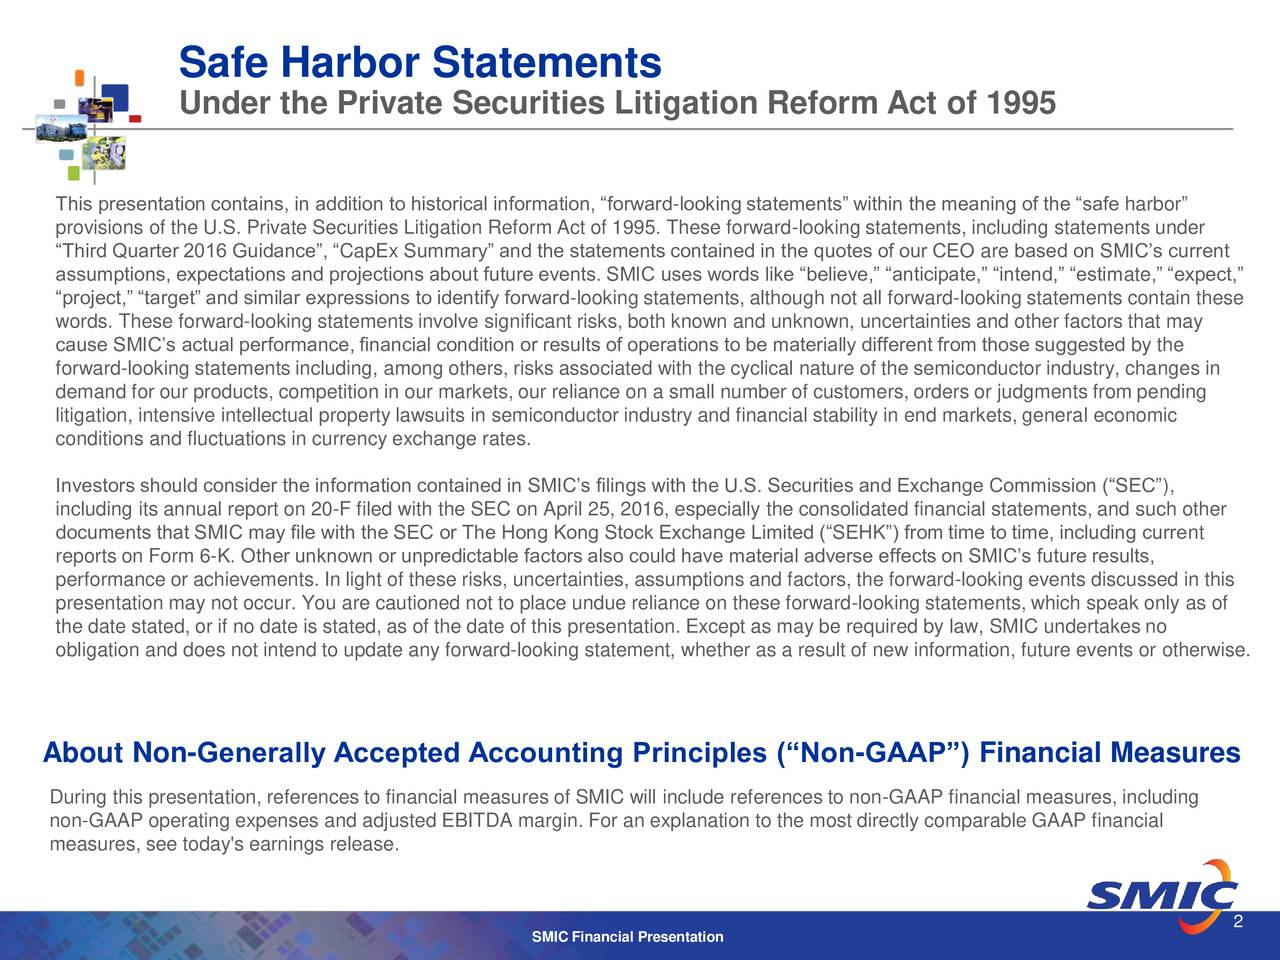 Under the Private Securities Litigation Reform Act of 1995 This presentation contains, in addition to historical information, forward-looking statements within the meaning of the safe harbor provisions of the U.S. Private Securities Litigation Reform Act of 1995. These forward-looking statements, including statements under Third Quarter 2016 Guidance, CapEx Summary and the statements contained in the quotes of our CEO are based on SMICs current assumptions, expectations and projections about future events. SMIC uses words like believe, anticipate, intend, estimate, expect, project, target and similar expressions to identify forward-looking statements, although not all forward-looking statements contain these words. These forward-looking statements involve significant risks, both known and unknown, uncertainties and other factors that may cause SMICs actual performance, financial condition or results of operations to be materially different from those suggested by the forward-looking statements including, among others, risks associated with the cyclical nature of the semiconductor industry, changes in demand for our products, competition in our markets, our reliance on a small number of customers, orders or judgments from pending litigation, intensive intellectual property lawsuits in semiconductor industry and financial stability in end markets, general economic conditions and fluctuations in currency exchange rates. Investors should consider the information contained in SMICs filings with the U.S. Securities and Exchange Commission (SEC), including its annual report on 20-F filed with the SEC on April 25, 2016, especially the consolidated financial statements, and such other documents that SMIC may file with the SEC or The Hong Kong Stock Exchange Limited (SEHK) from time to time, including current reports on Form 6-K. Other unknown or unpredictable factors also could have material adverse effects on SMICs future results, performance or achievements. In light of th